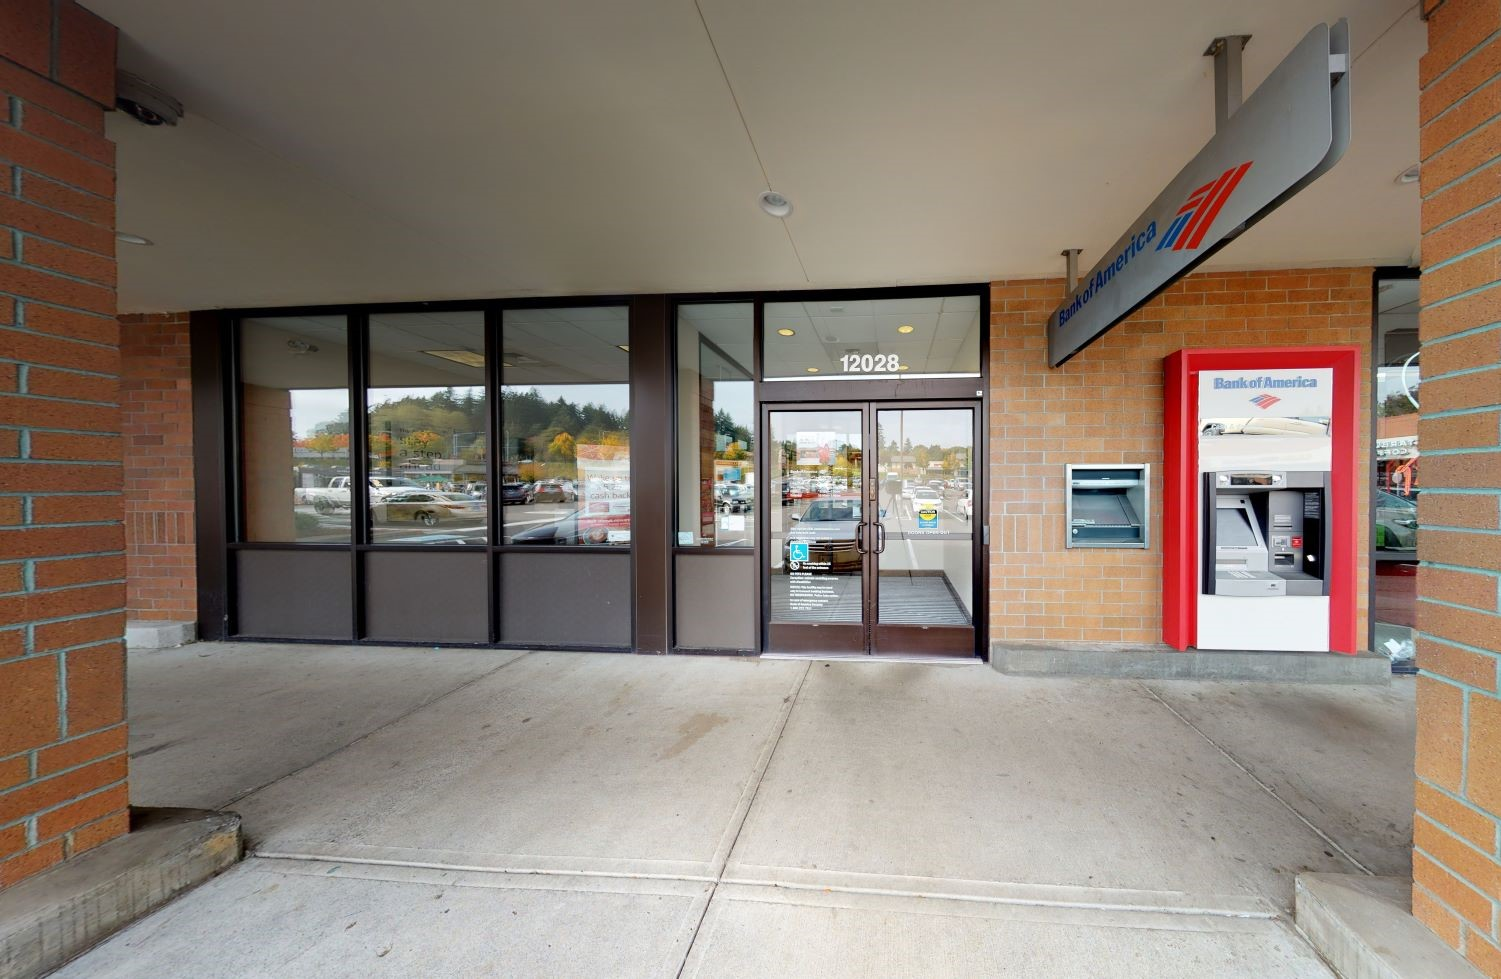 Bank of America financial center with walk-up ATM   12028 SE Sunnyside Rd, Clackamas, OR 97015